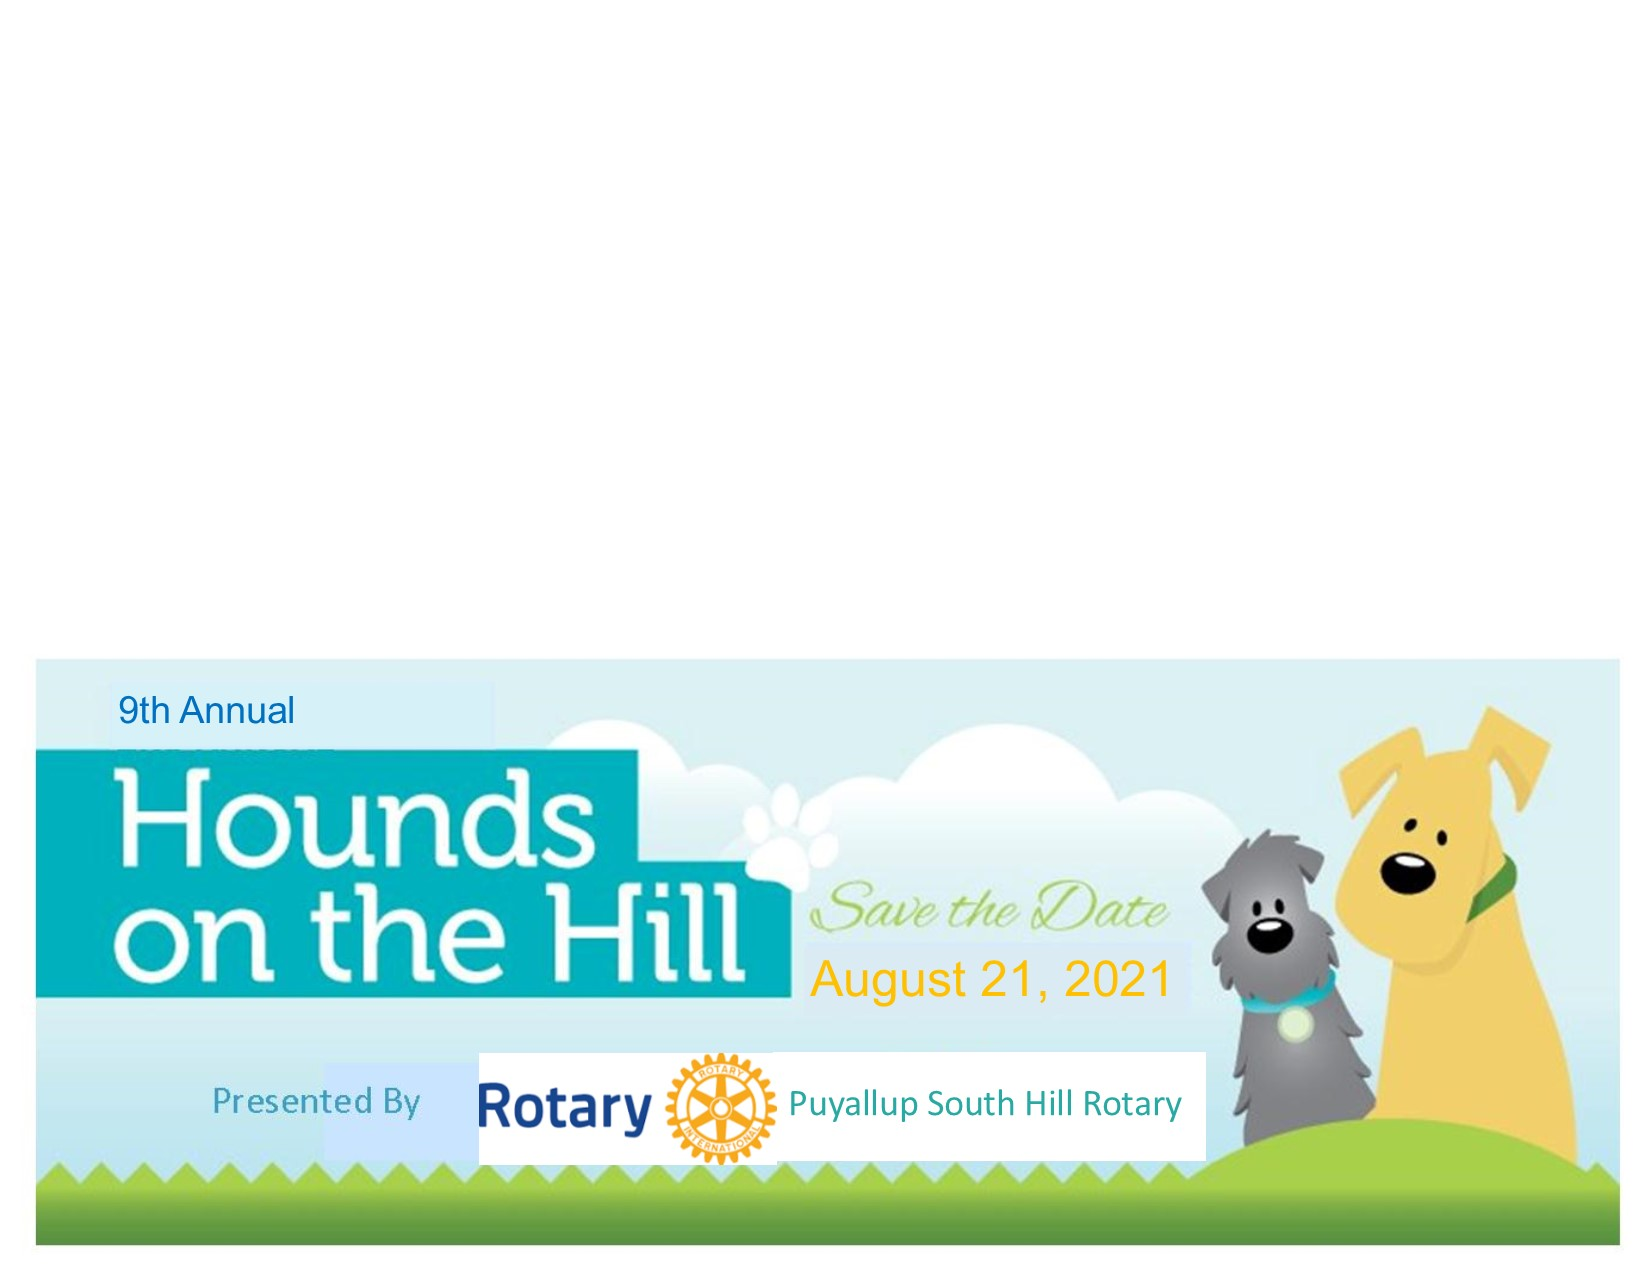 Hounds on the Hill